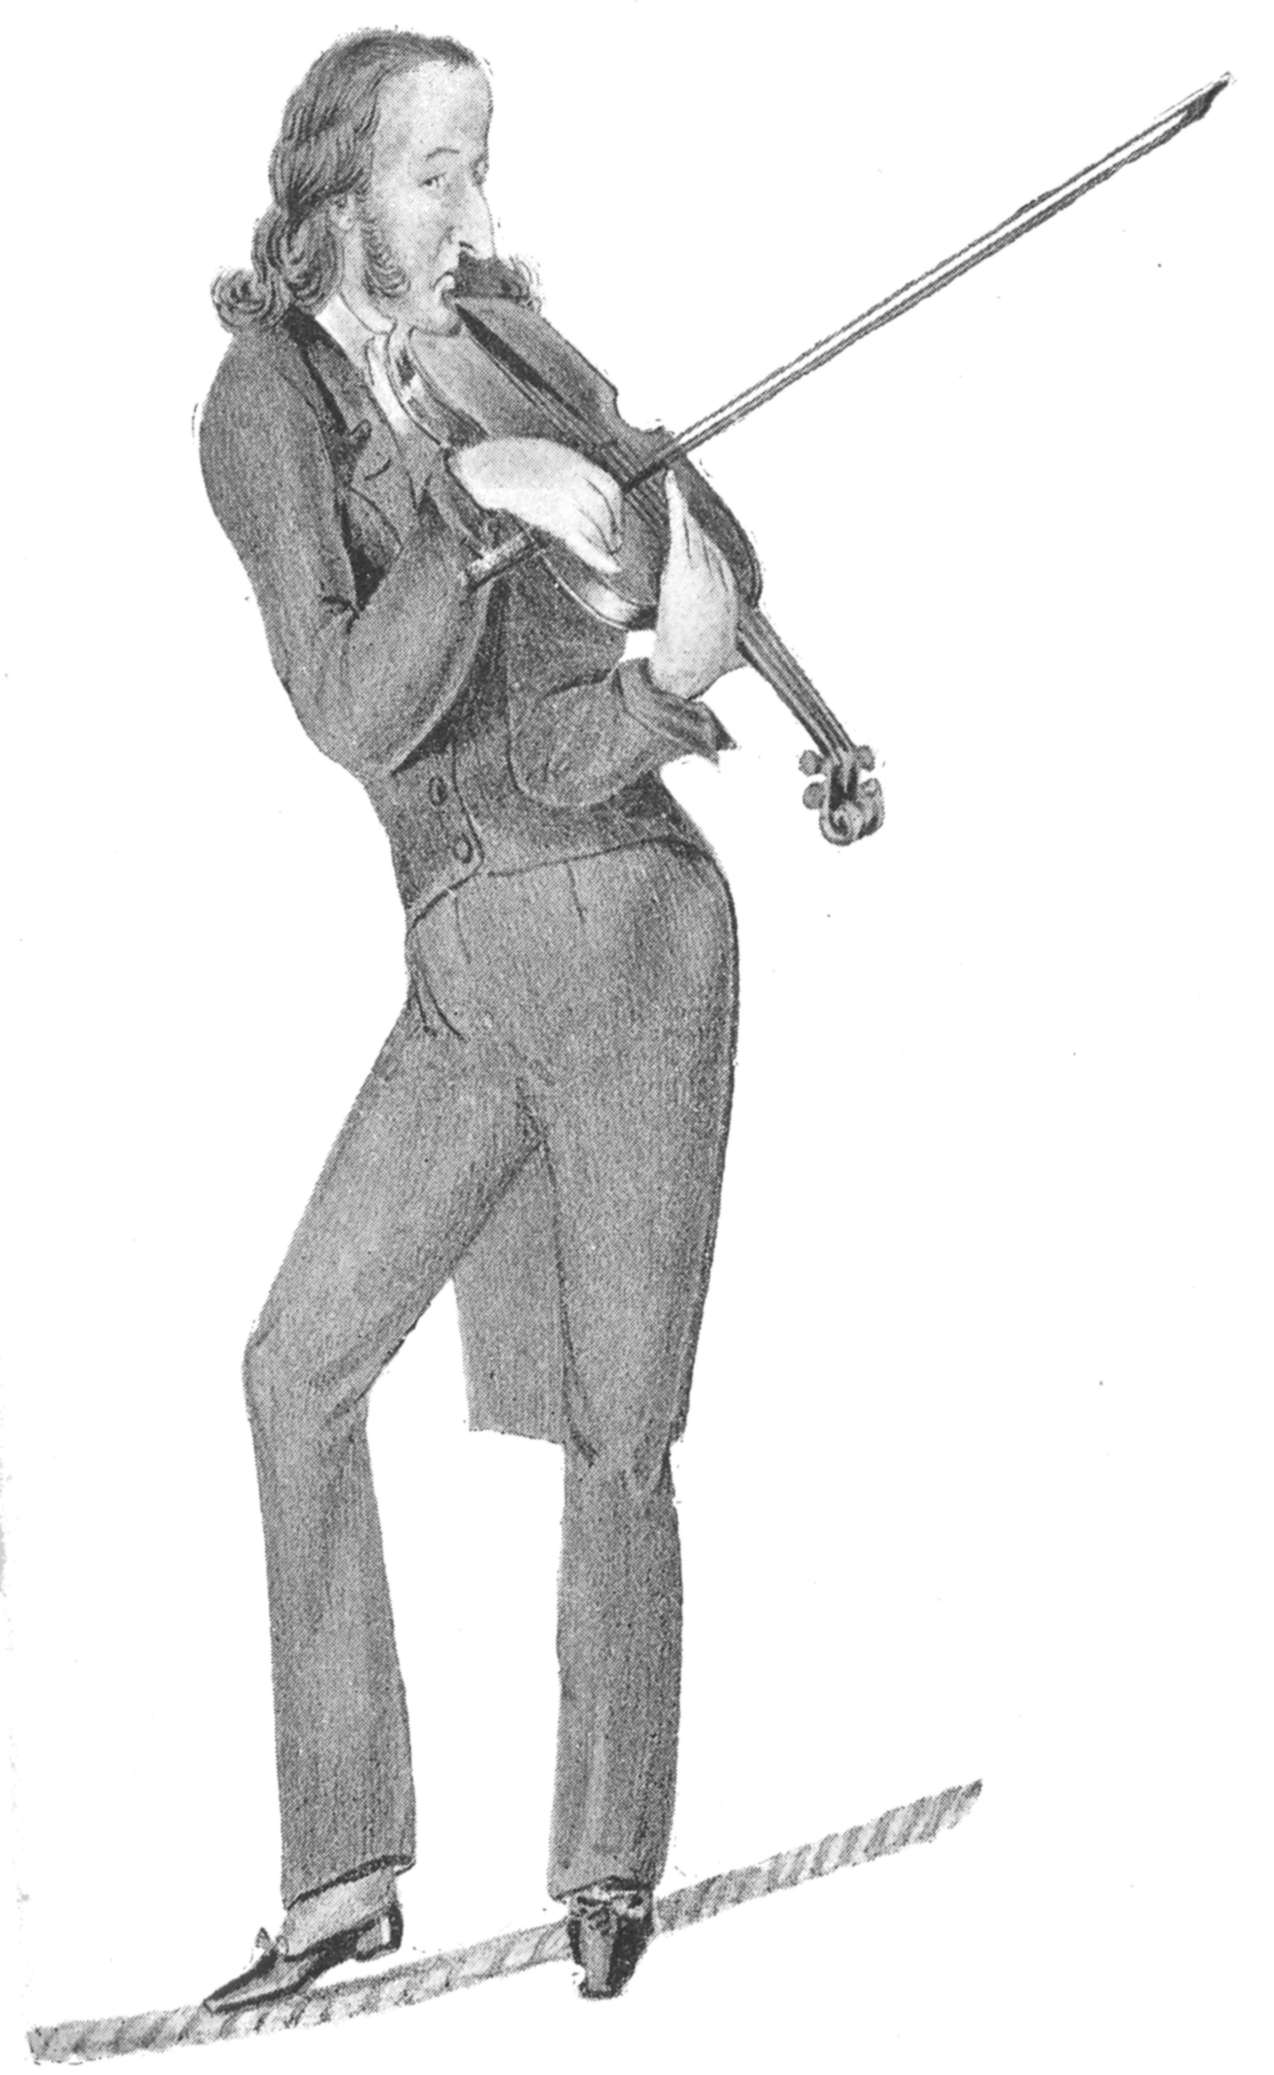 The Project Gutenberg eBook of Nicolo Paganini His Life and Work